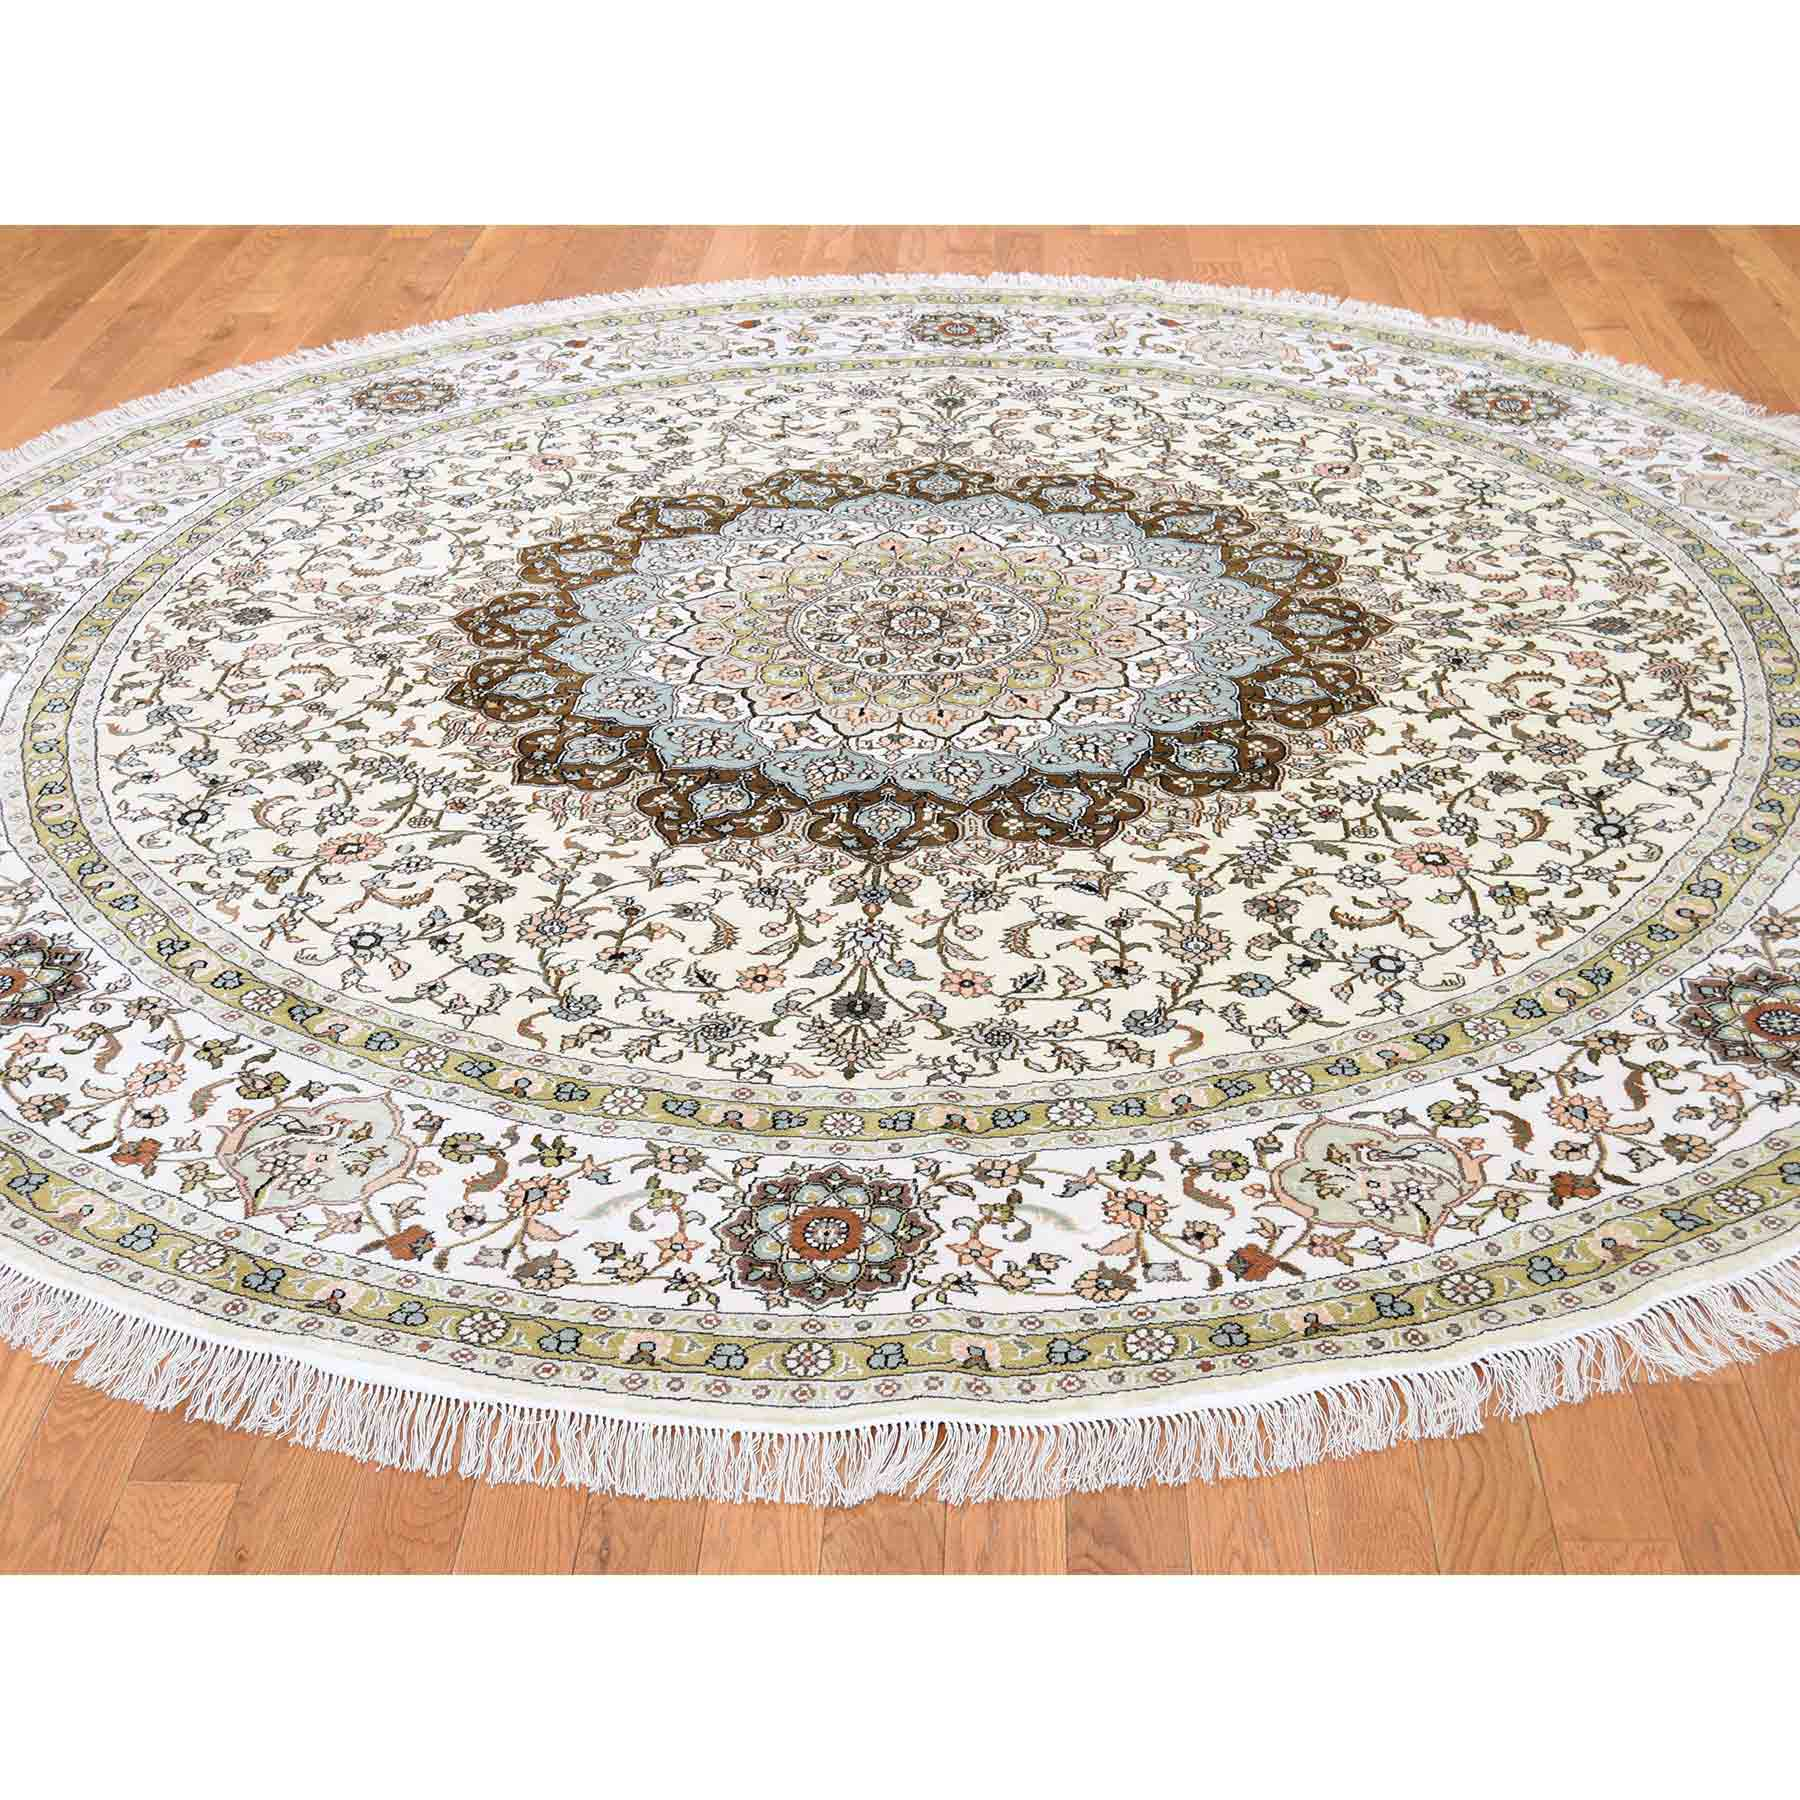 Fine-Oriental-Hand-Knotted-Rug-223240